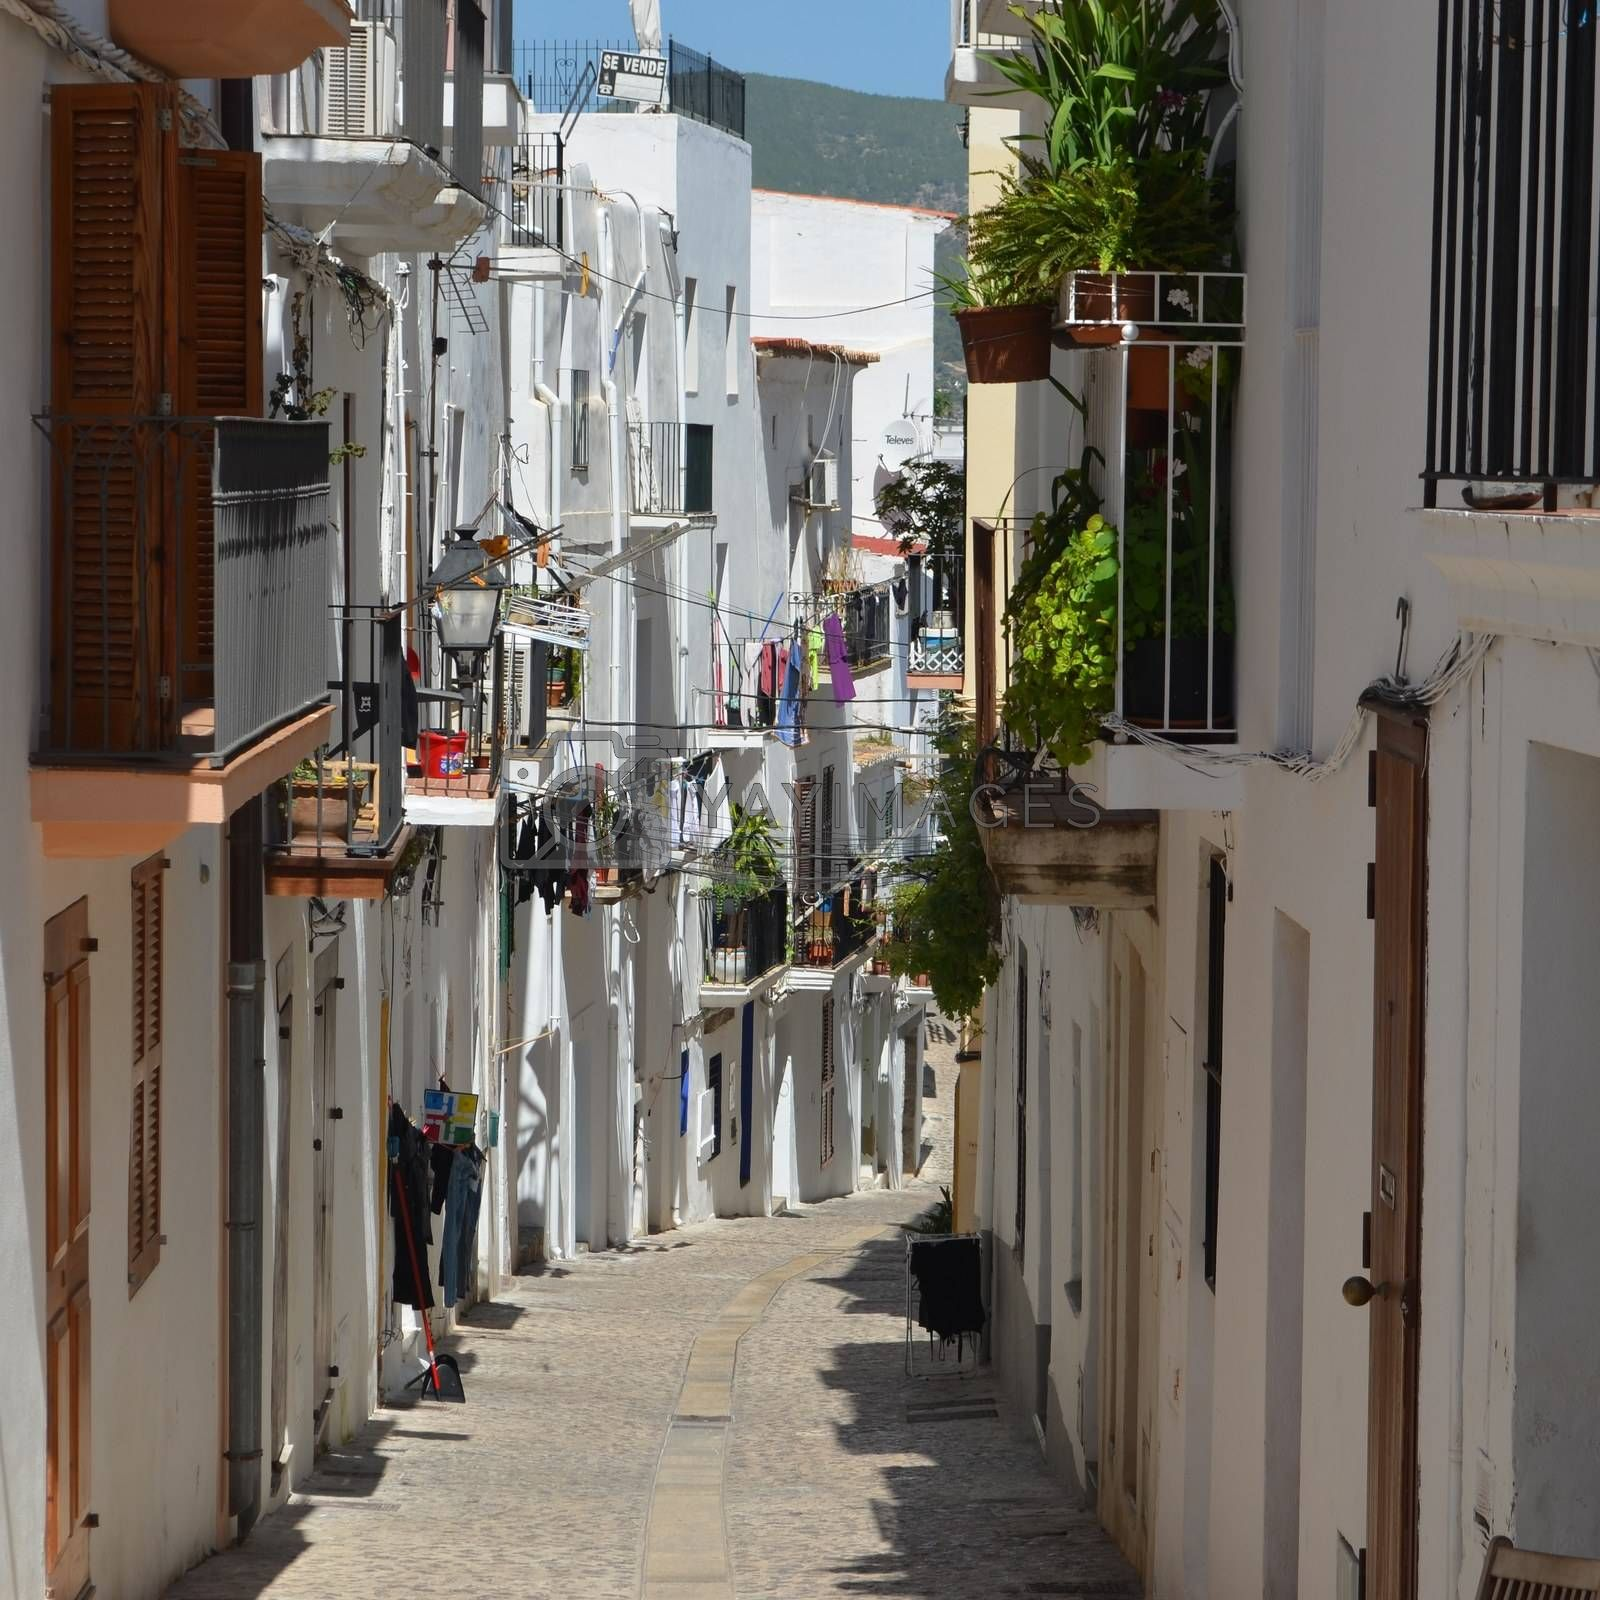 Narrow Side Streets with Houses in Ibiza Spain